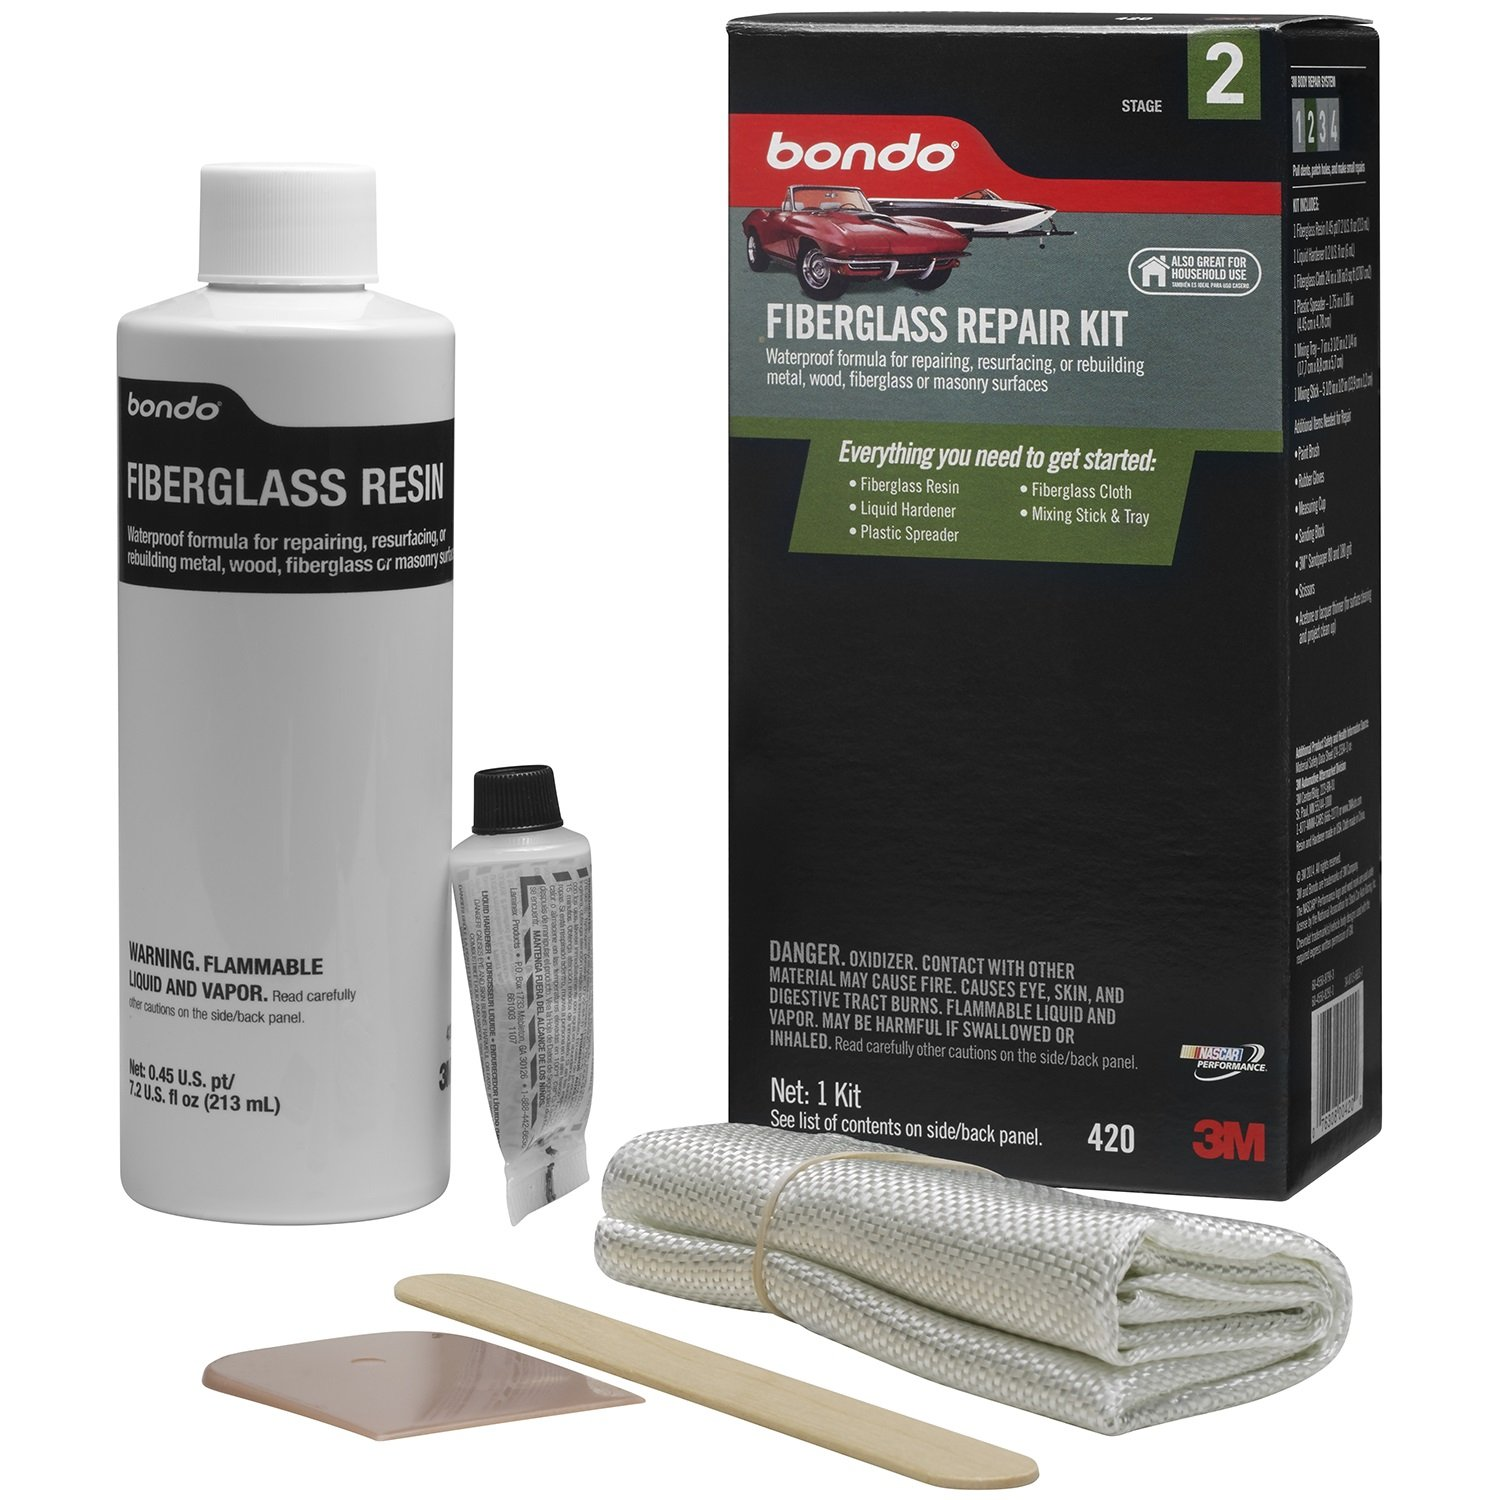 Amazon.com: 3M 420 Fiberglass Resin & Repair Kit, .45 Pint: Automotive